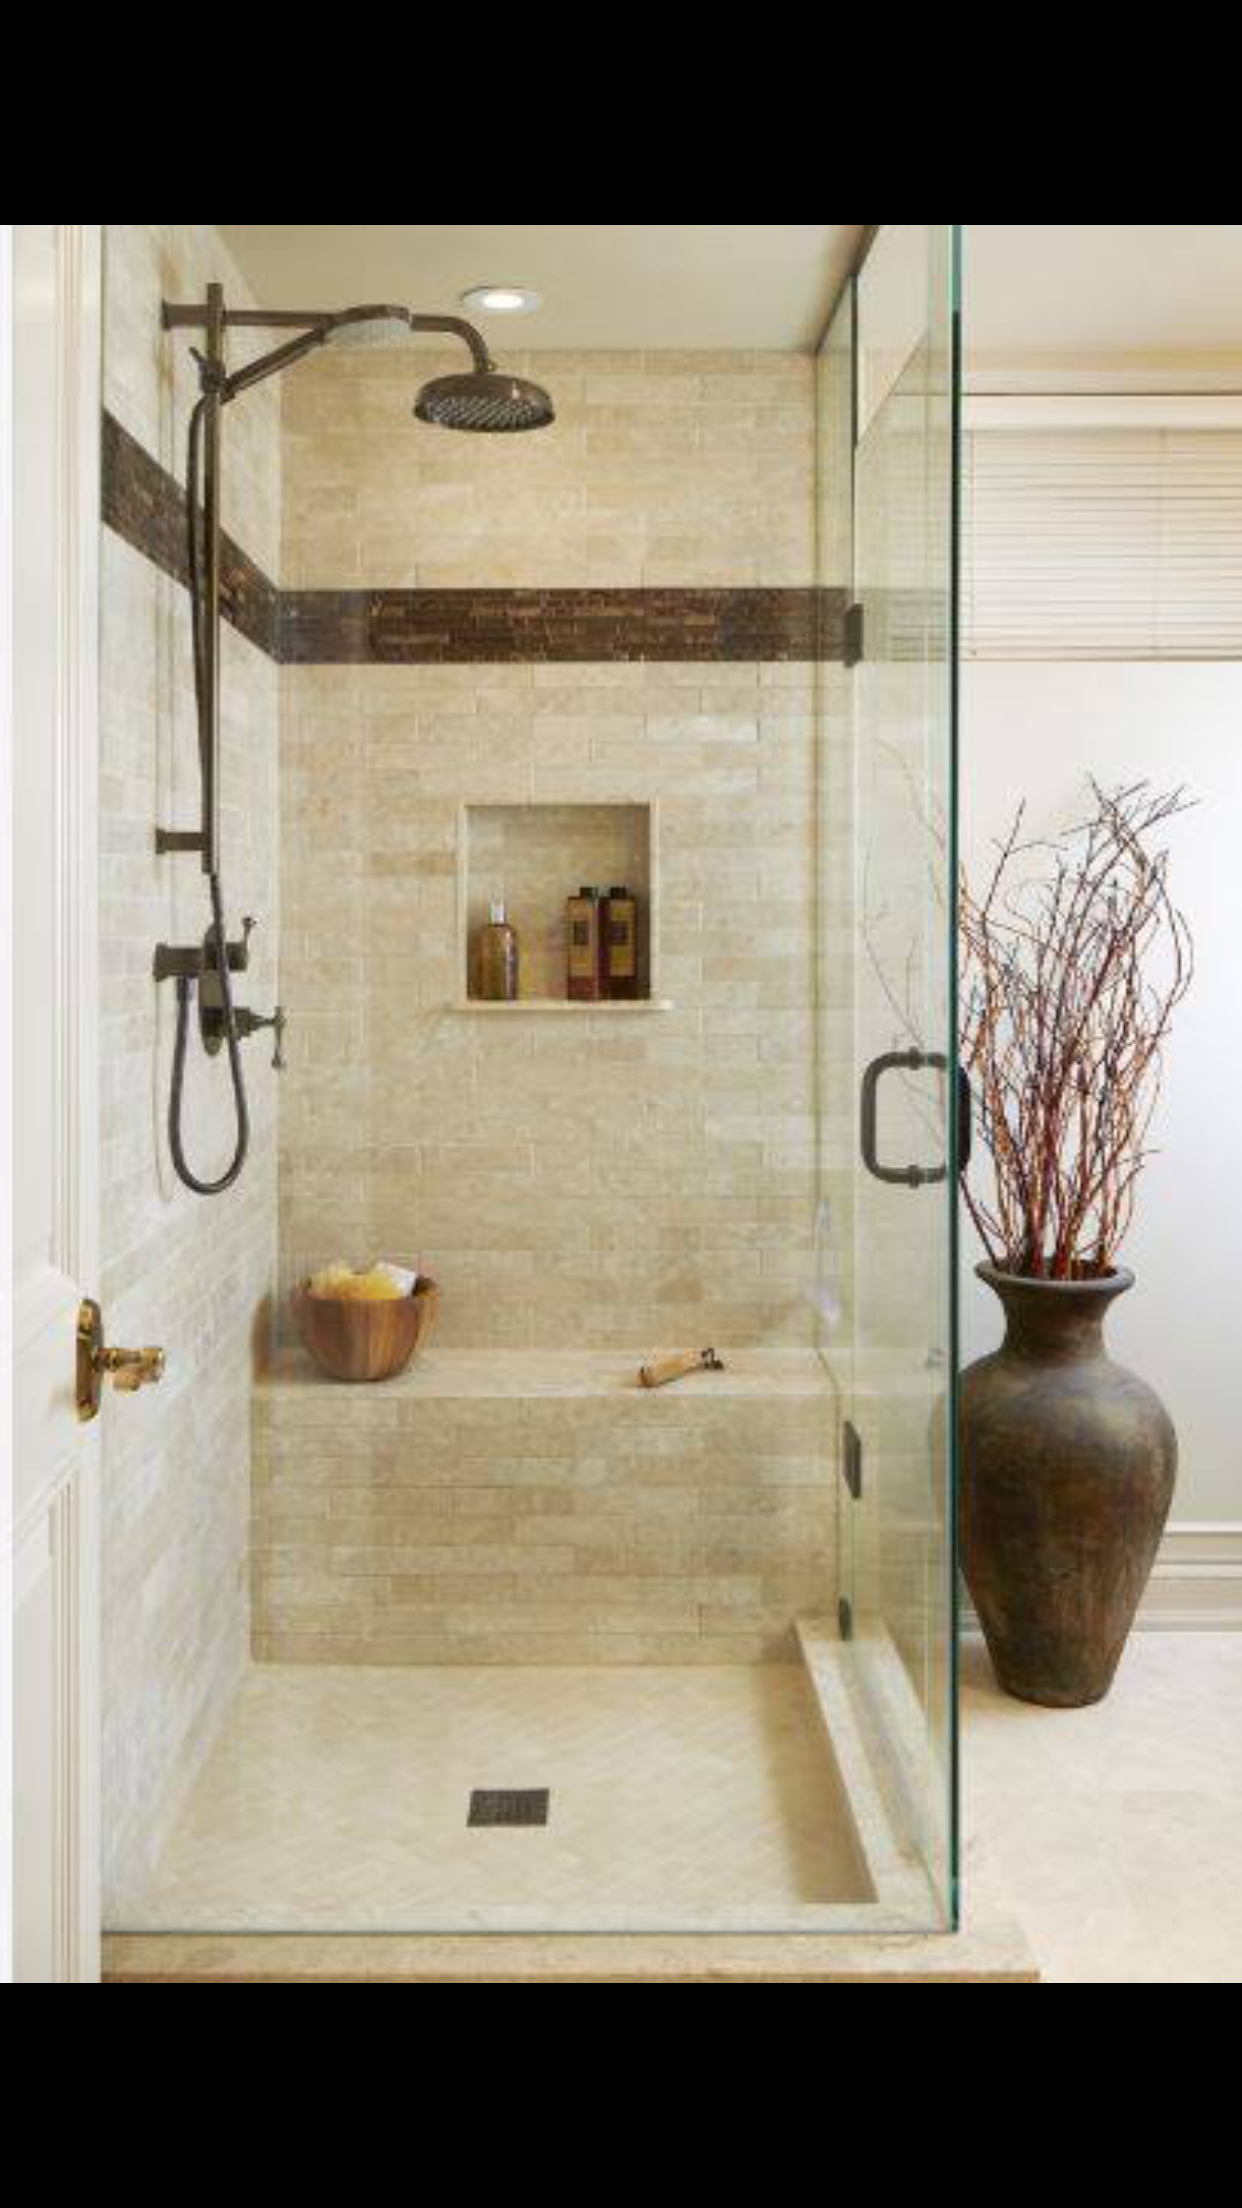 Pin by Kimberly Song on Tile bathrooms